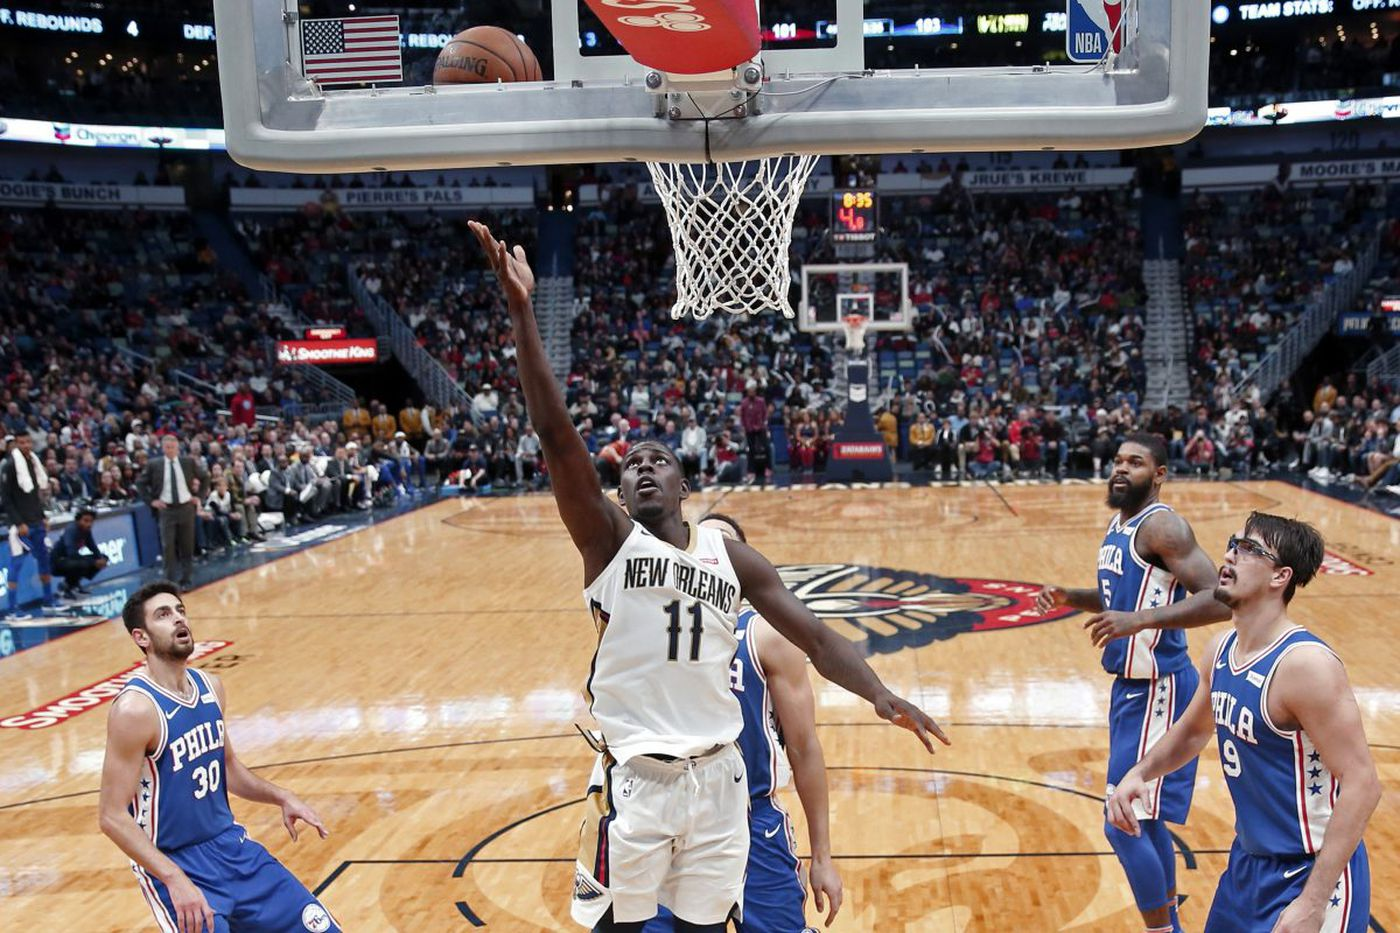 Sixers-Pelicans observations, 'best' and 'worst' awards: Jrue Holiday, Timothe Luwawu-Cabarrot and another late collapse